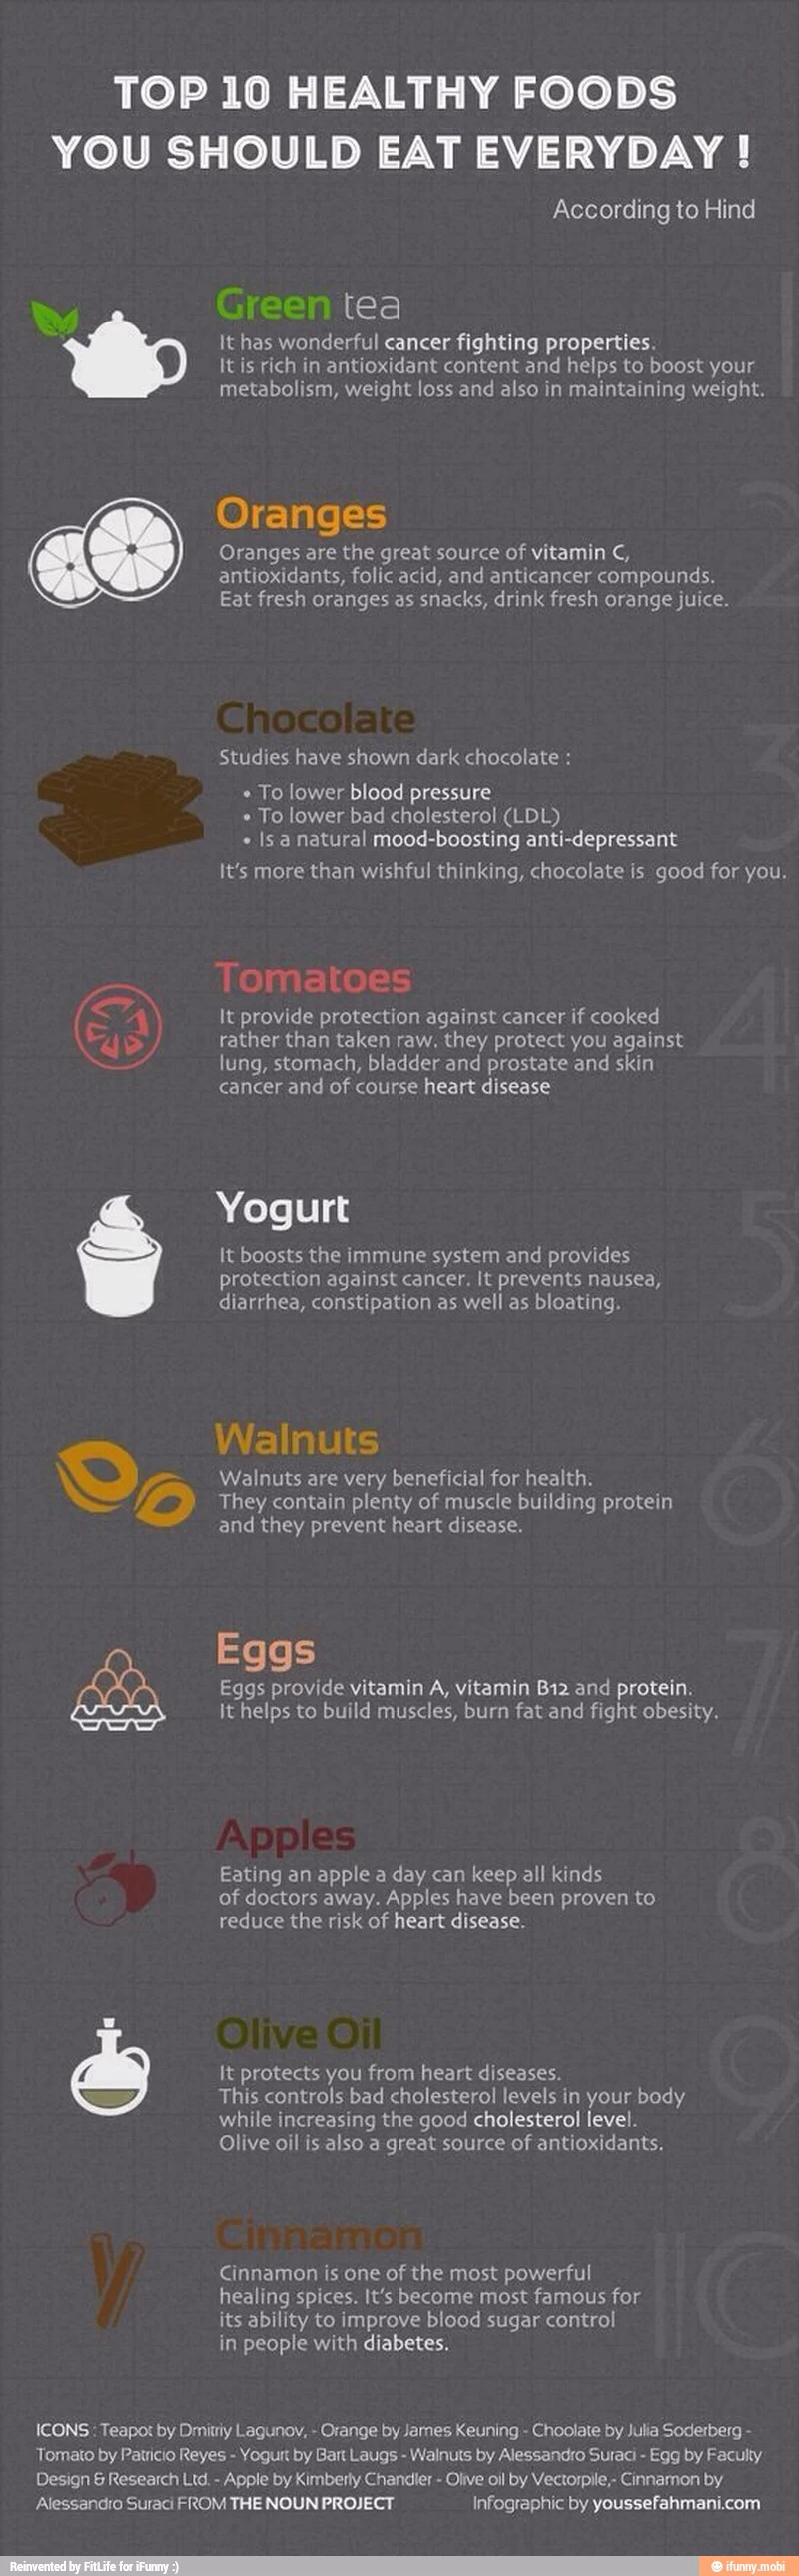 Curious about what to eat?  Here's a list of some easy foods you can add to your daily intake